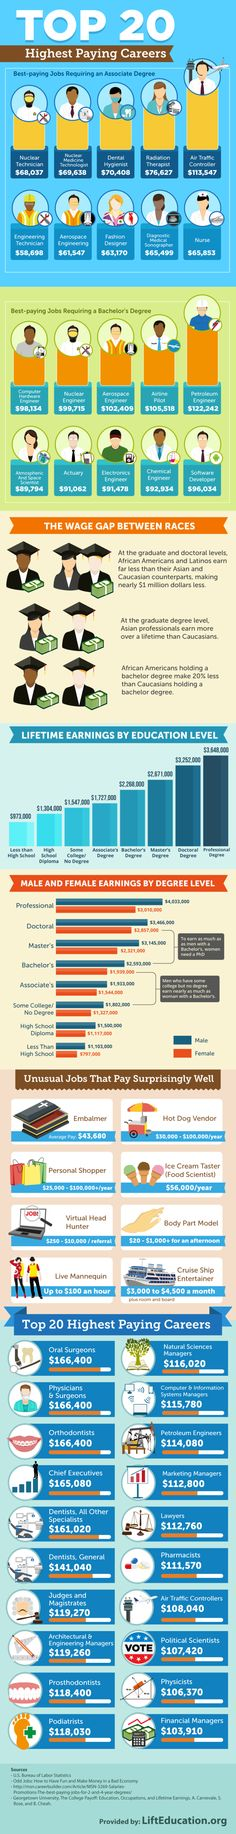 Top 20 Highest Paying careers #infografia #infographic #education